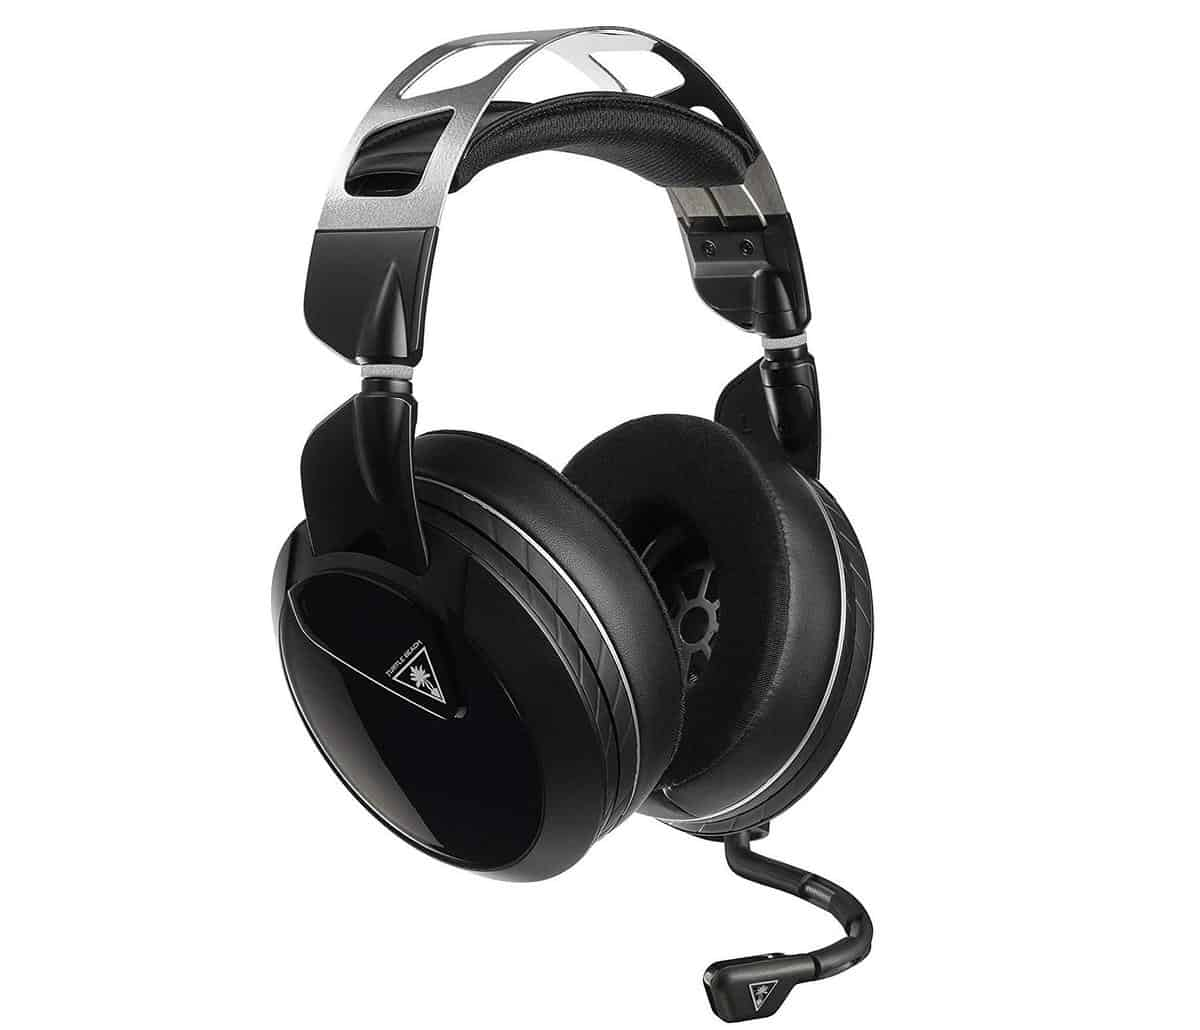 Best Gaming Headset for eSports